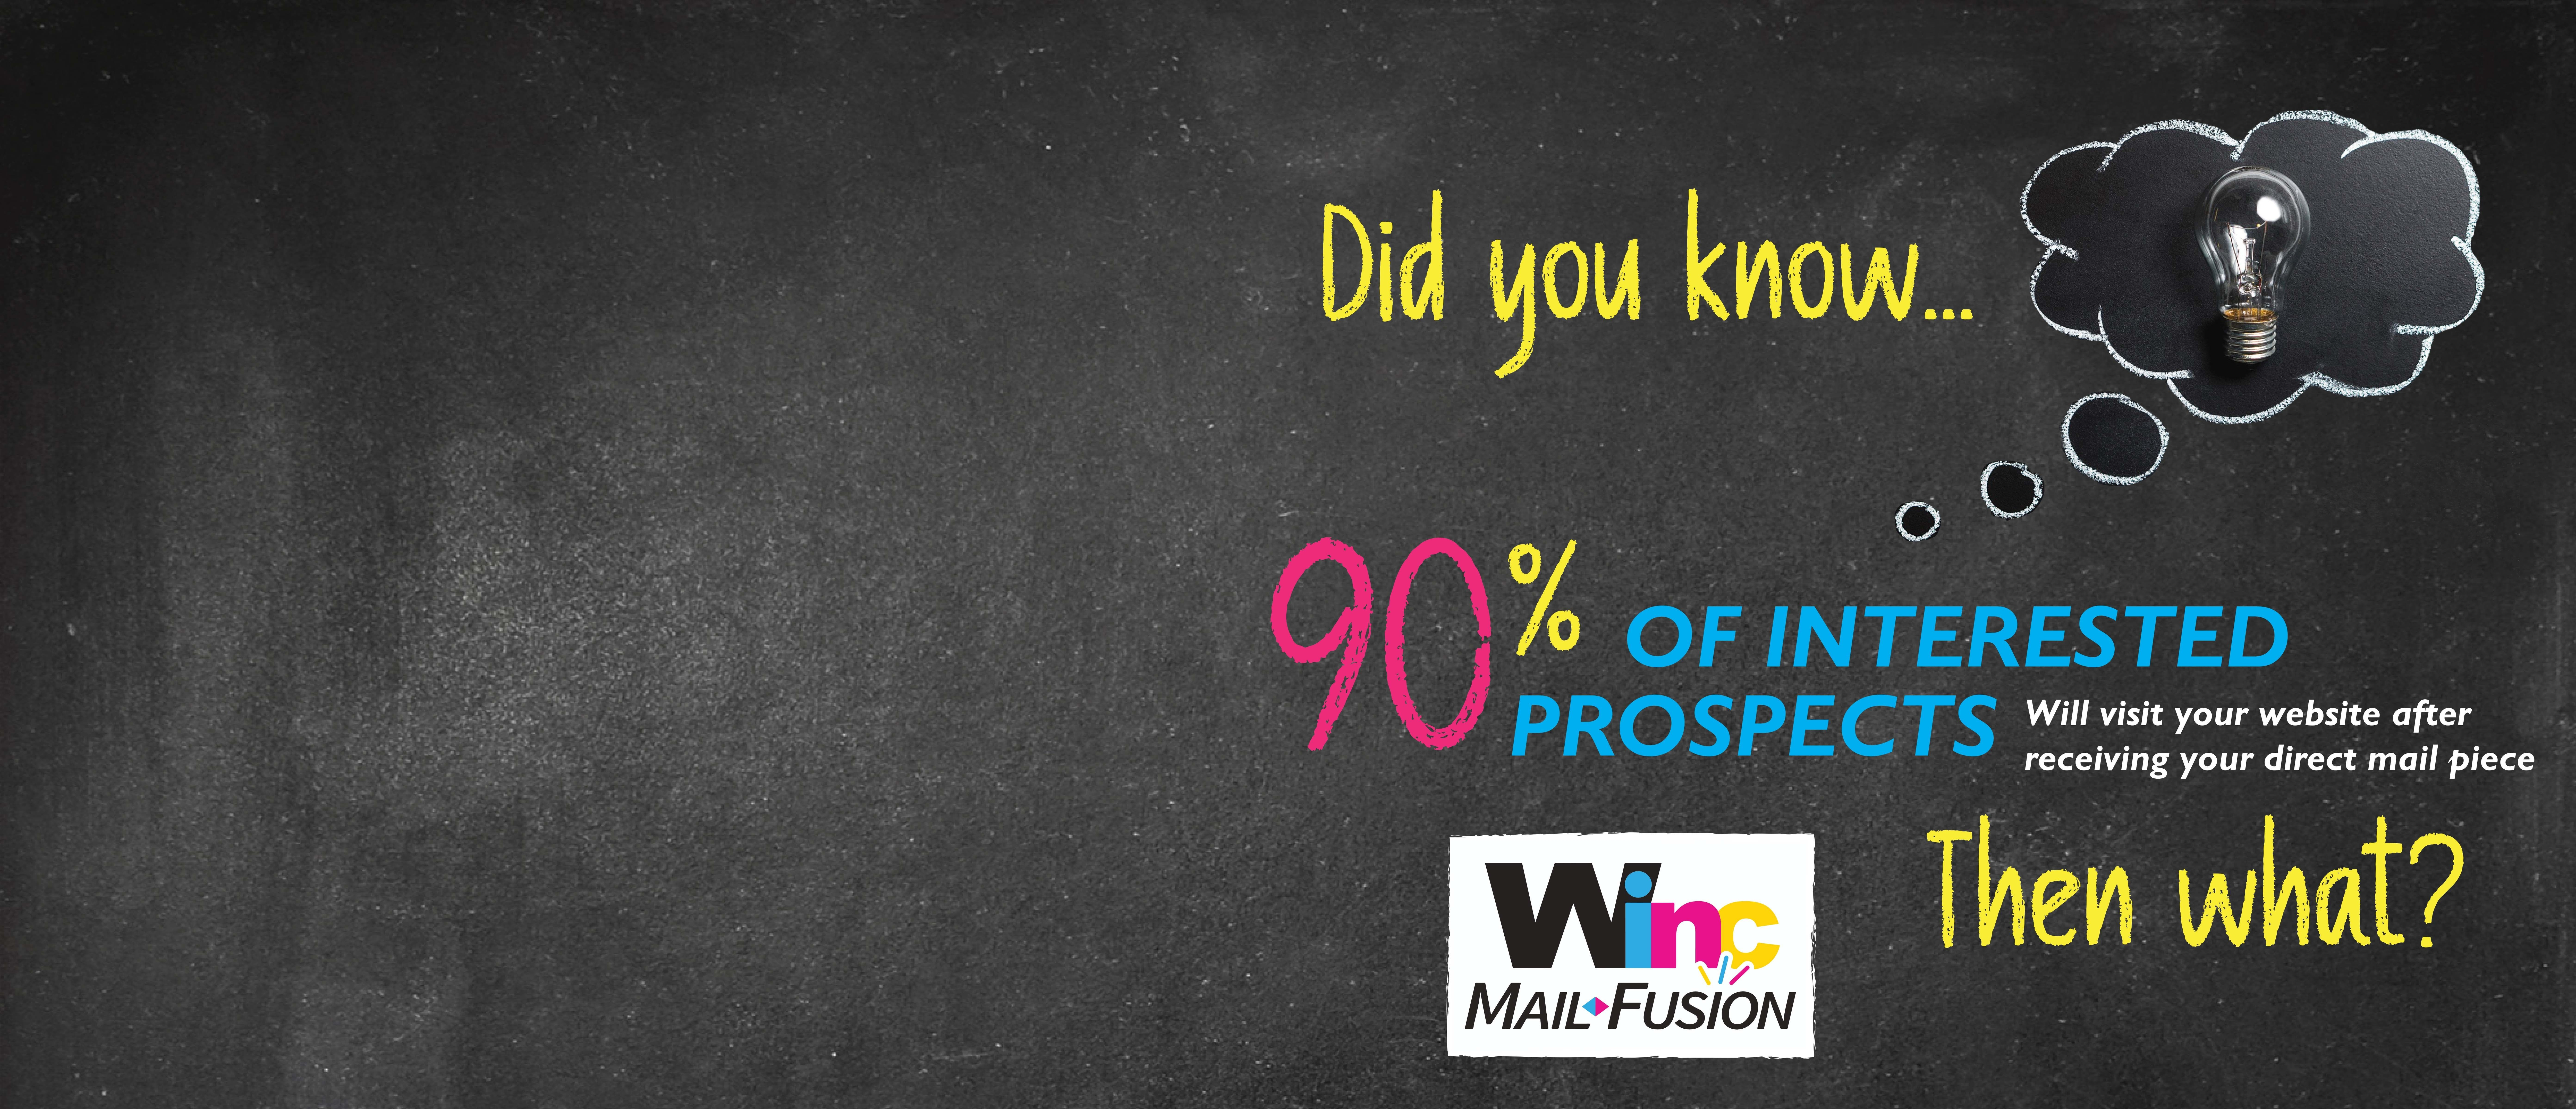 Did You Miss the Direct Mail Webinar?